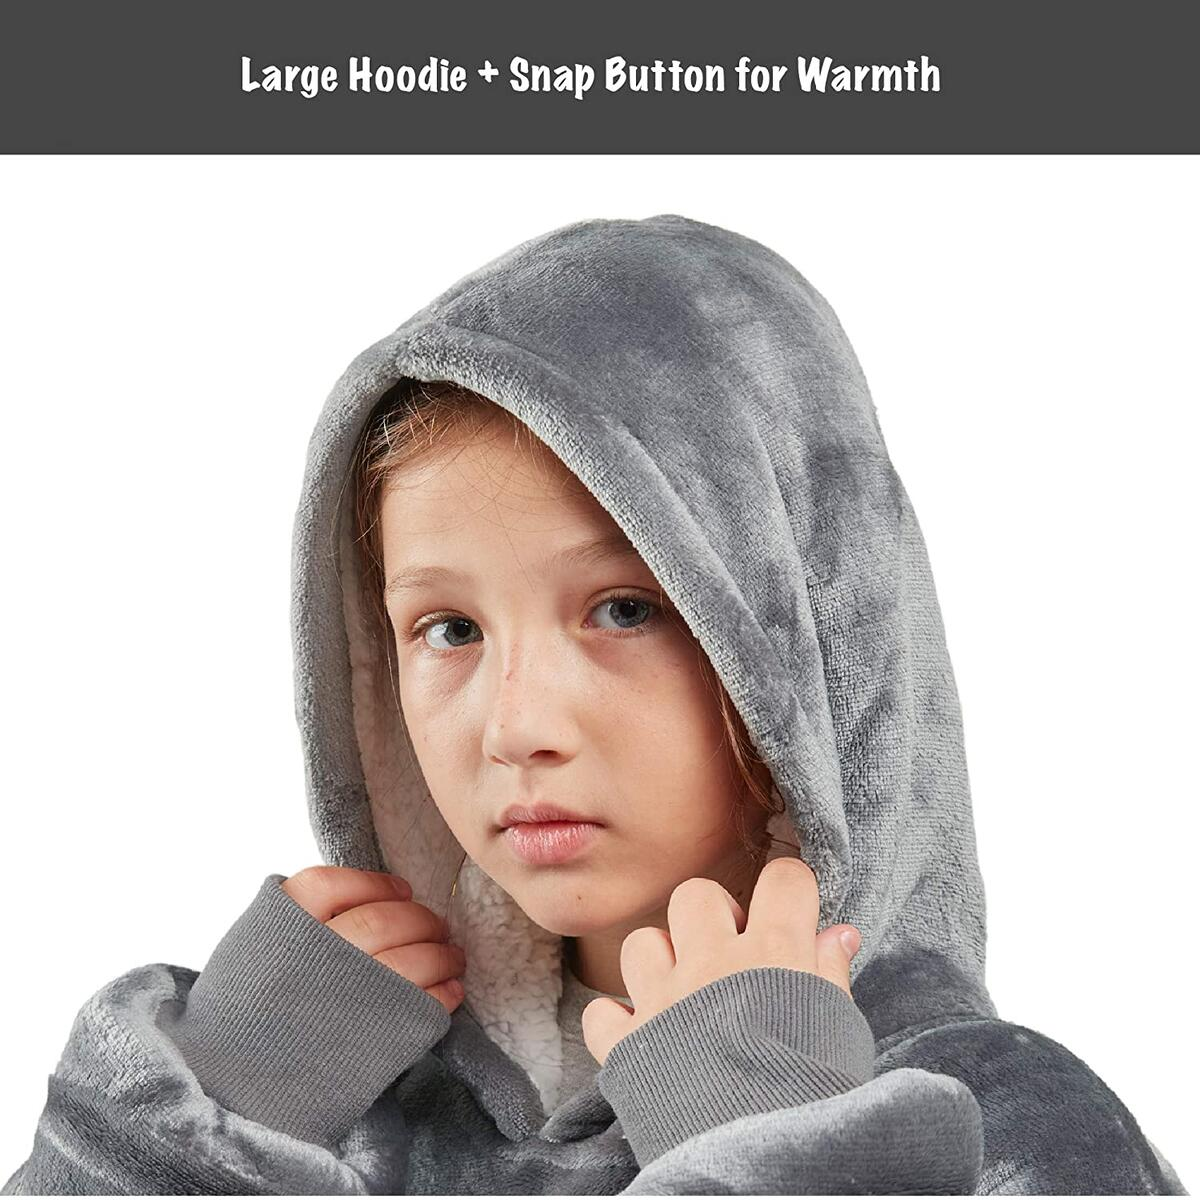 KID SIZE ONLY any color [Degrees Of Comfort] Blanket Hoodie for Kids | Cool Birthday Gifts for Girls Boys, Soft Microfiber Fleece and Fuzzy Sherpa Kids Wearable Blankets Sweatshirt, One Size Fits All, 30x28